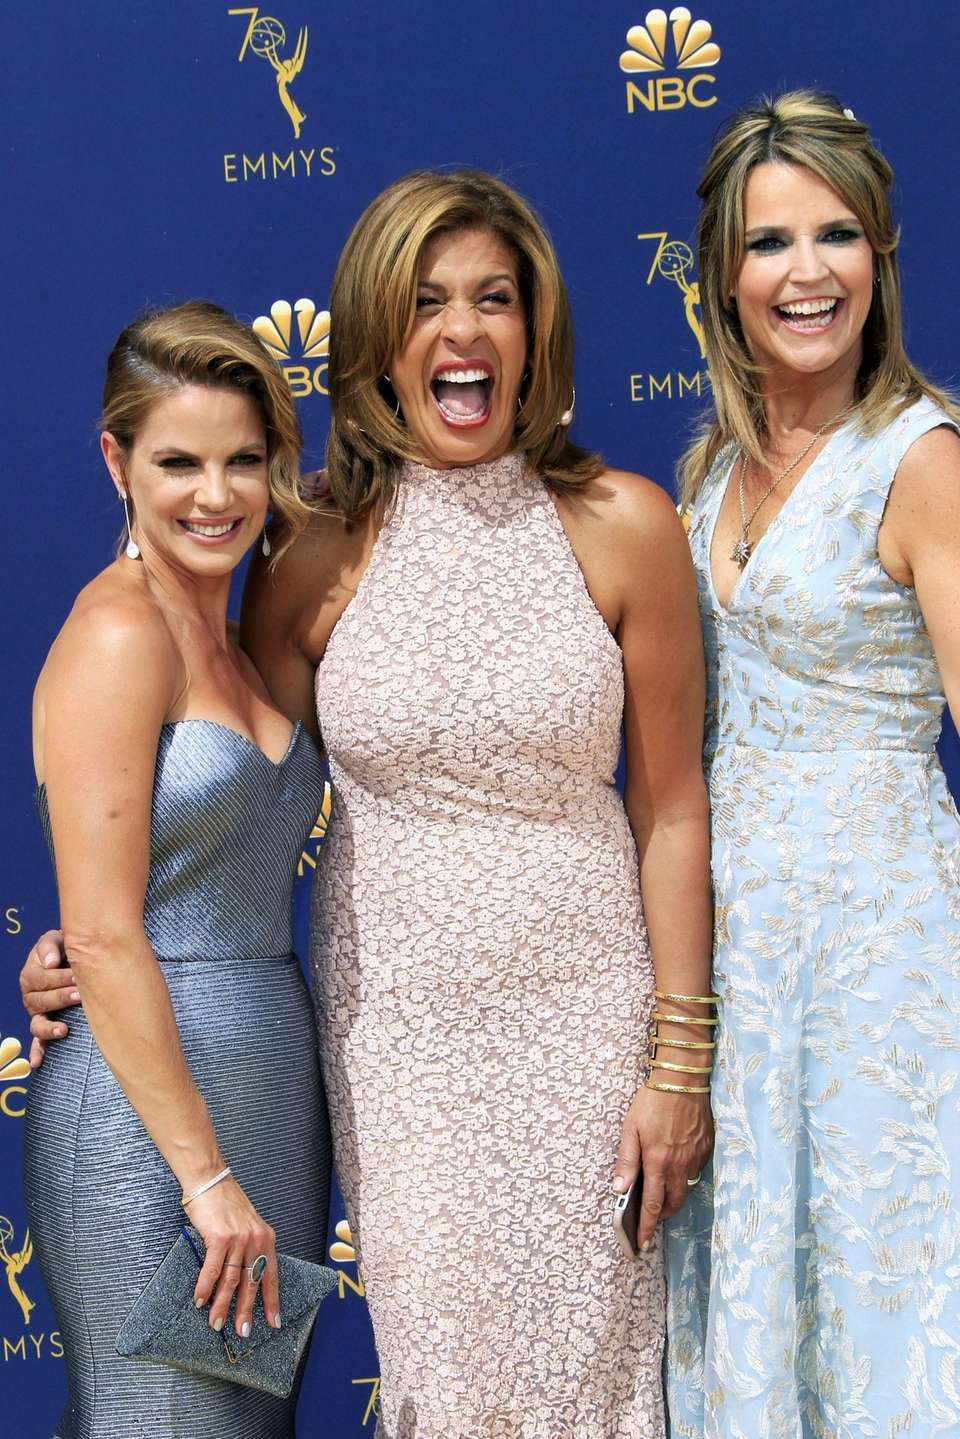 From left, Natalie Morales, Hoda Kotb and Savannah